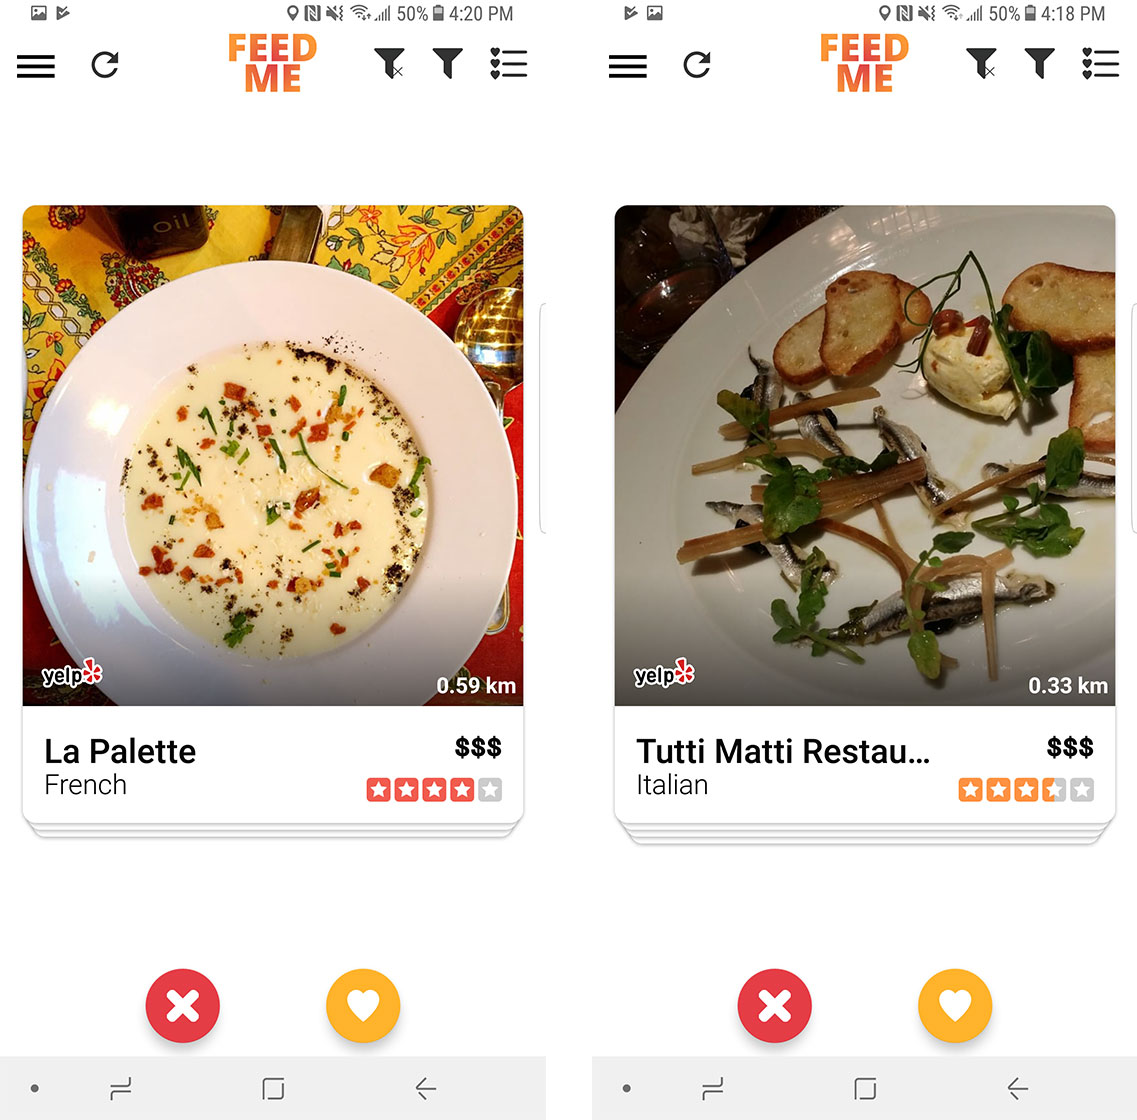 An image showing the swipe interface on Feed Me